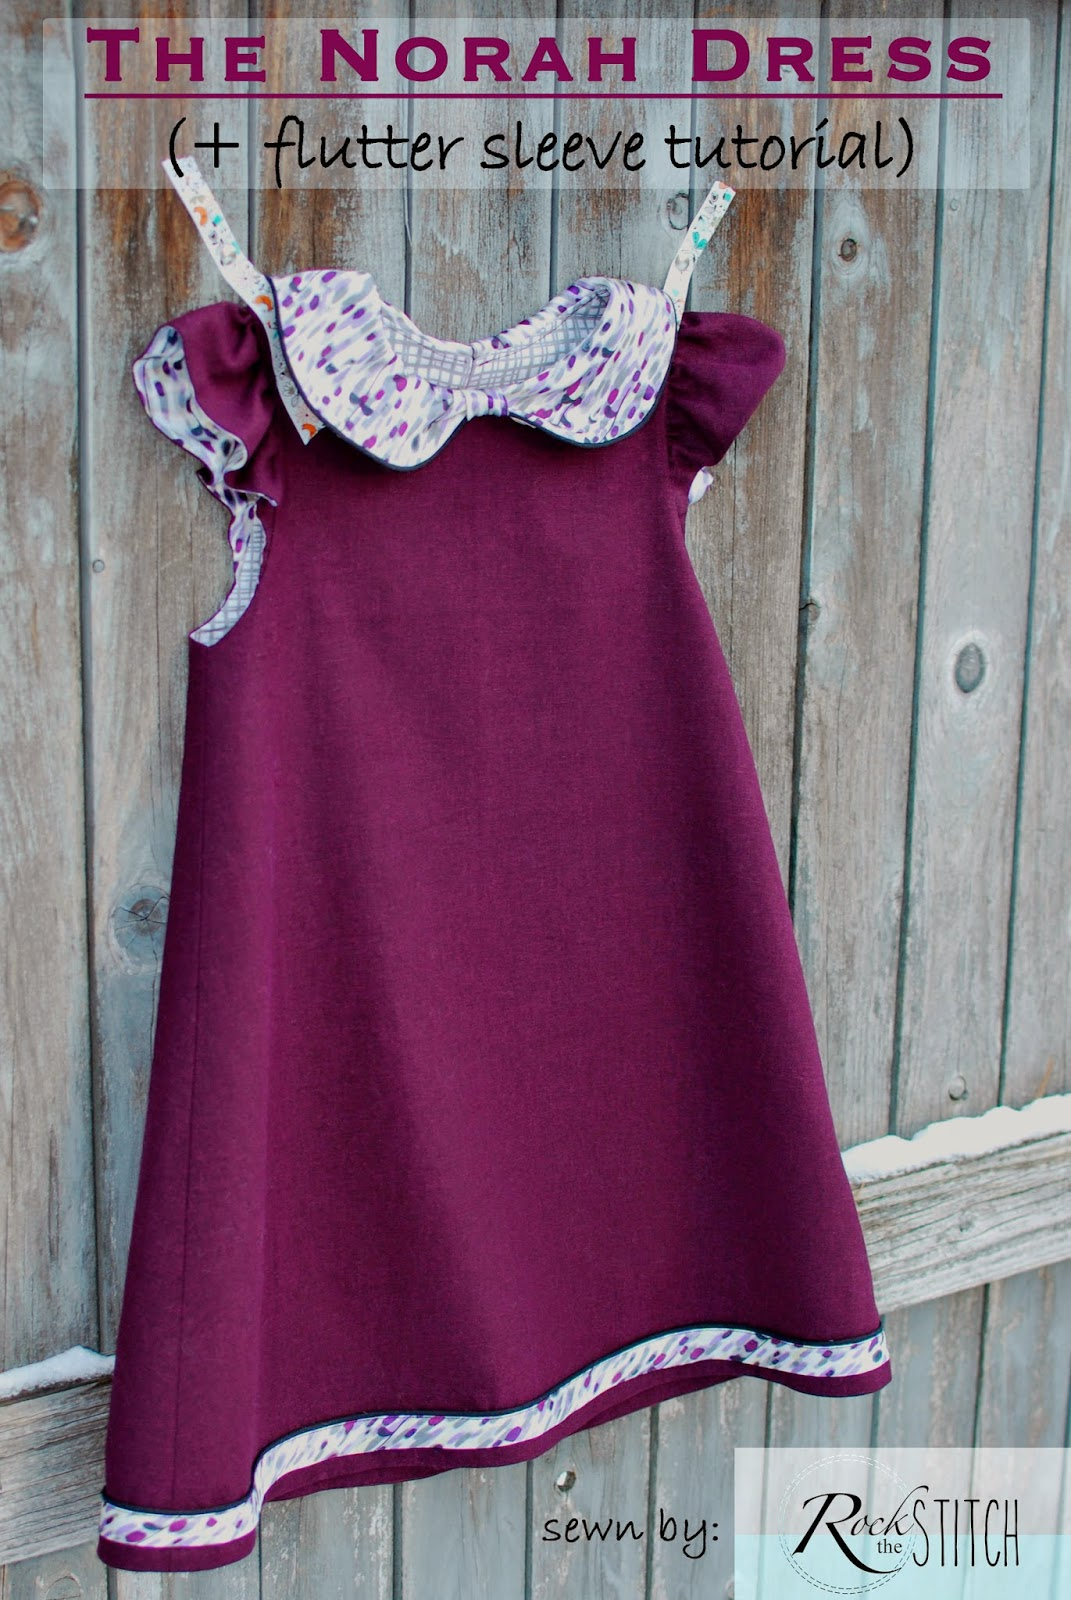 http://rockthestitch.blogspot.com/2013/12/the-norah-dress-pattern-tour-flutter.html